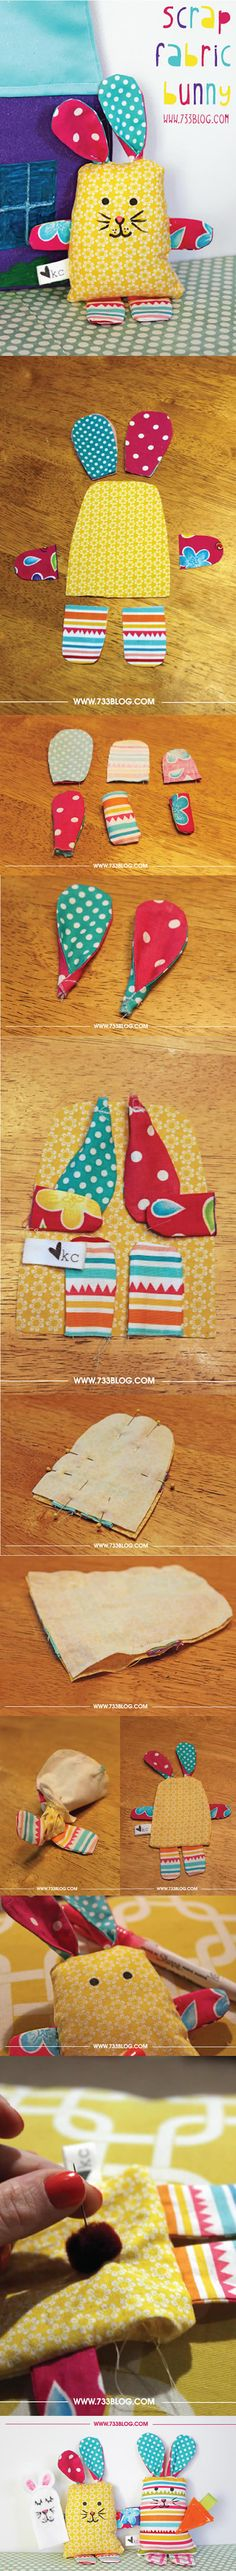 Coelho de Pascoa de Tecido com Molde passo a passo Sewing Stuffed Animals, Fabric Scraps, Doll Patterns, Patches, Bunny, Sewing Diy, Pillows, Projects, Tissue Poms